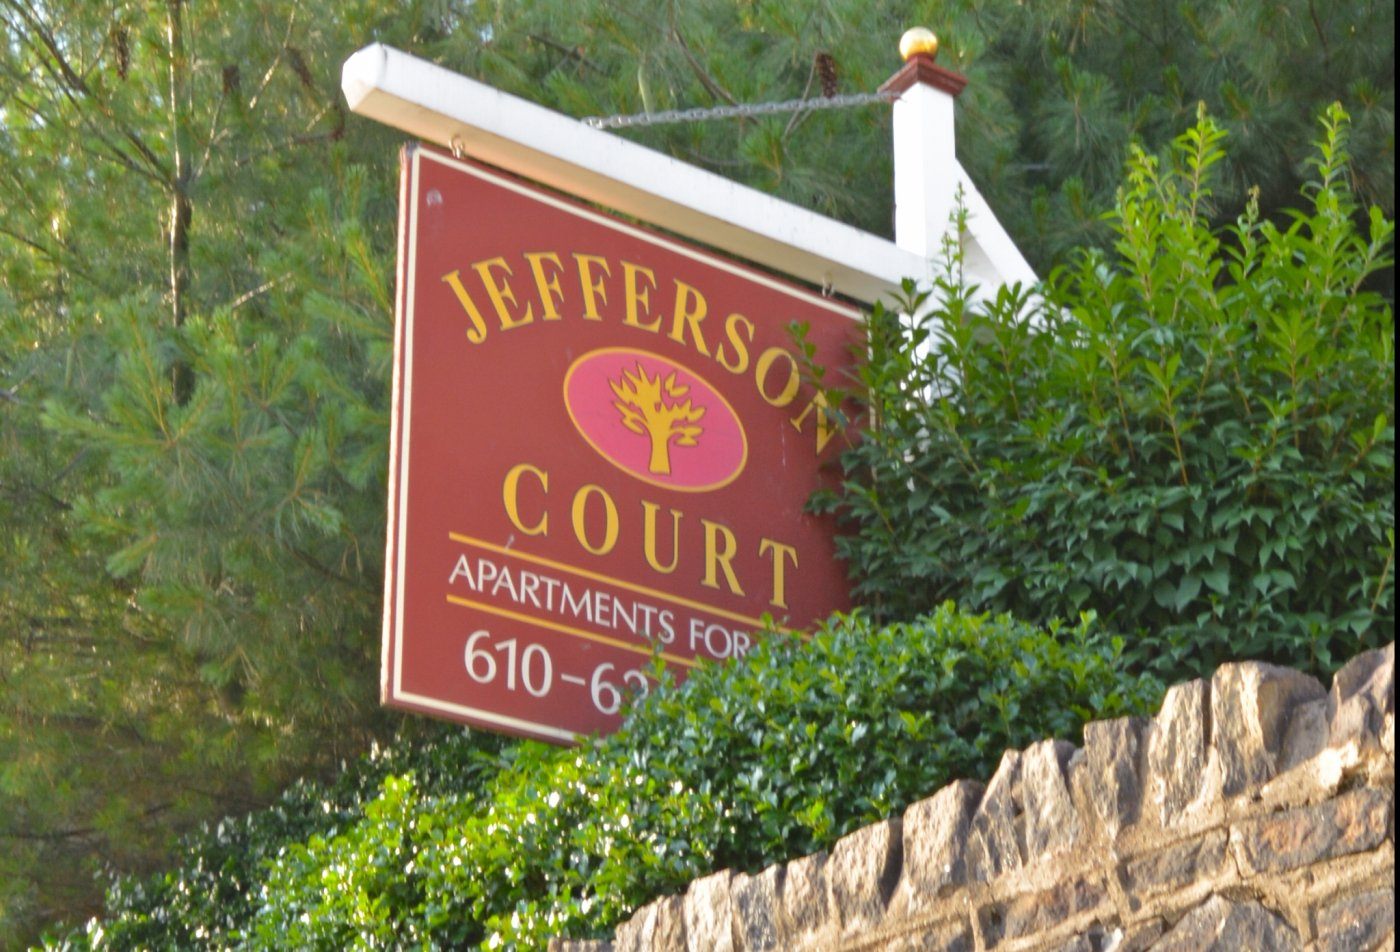 Apartments in Clifton Heights, PA | Jefferson Court Apartments